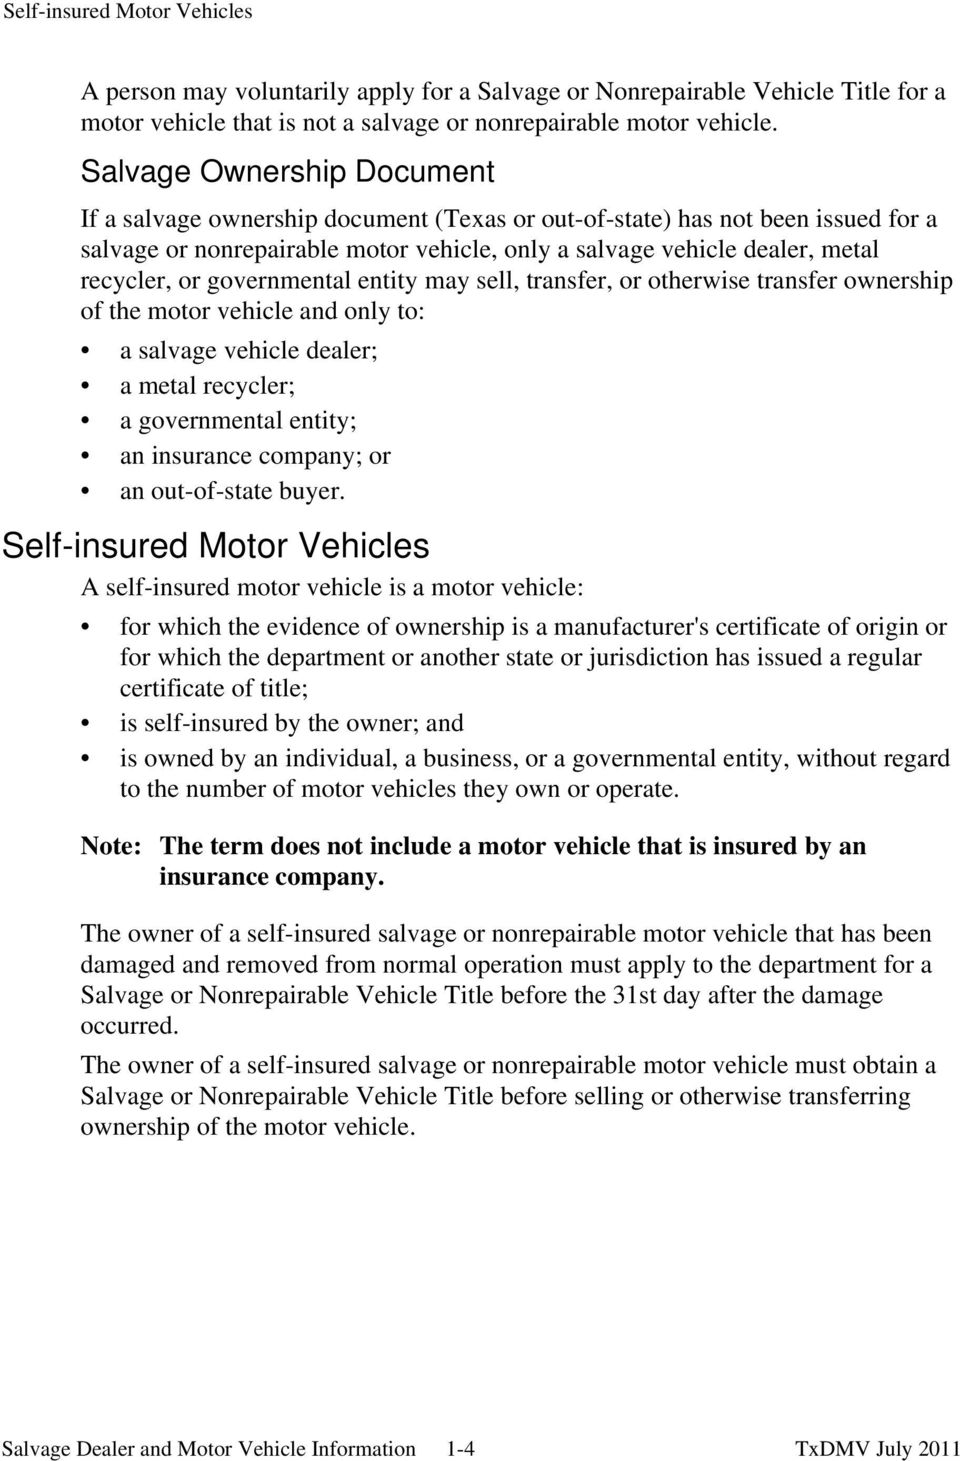 governmental entity may sell, transfer, or otherwise transfer ownership of the motor vehicle and only to: a salvage vehicle dealer; a metal recycler; a governmental entity; an insurance company; or